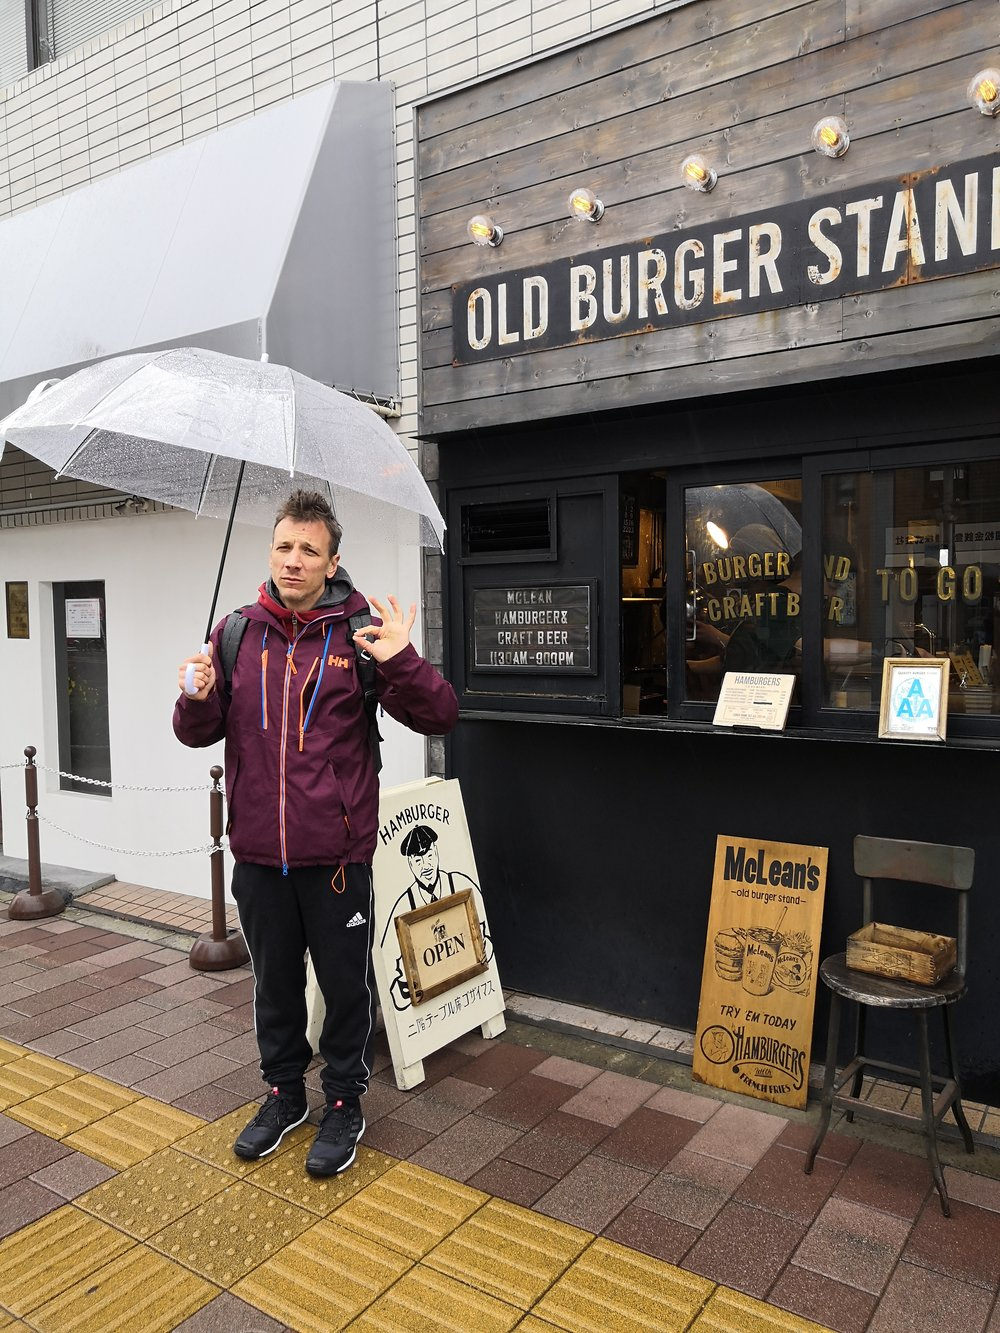 Tokyo - McLean Old Burger Stand